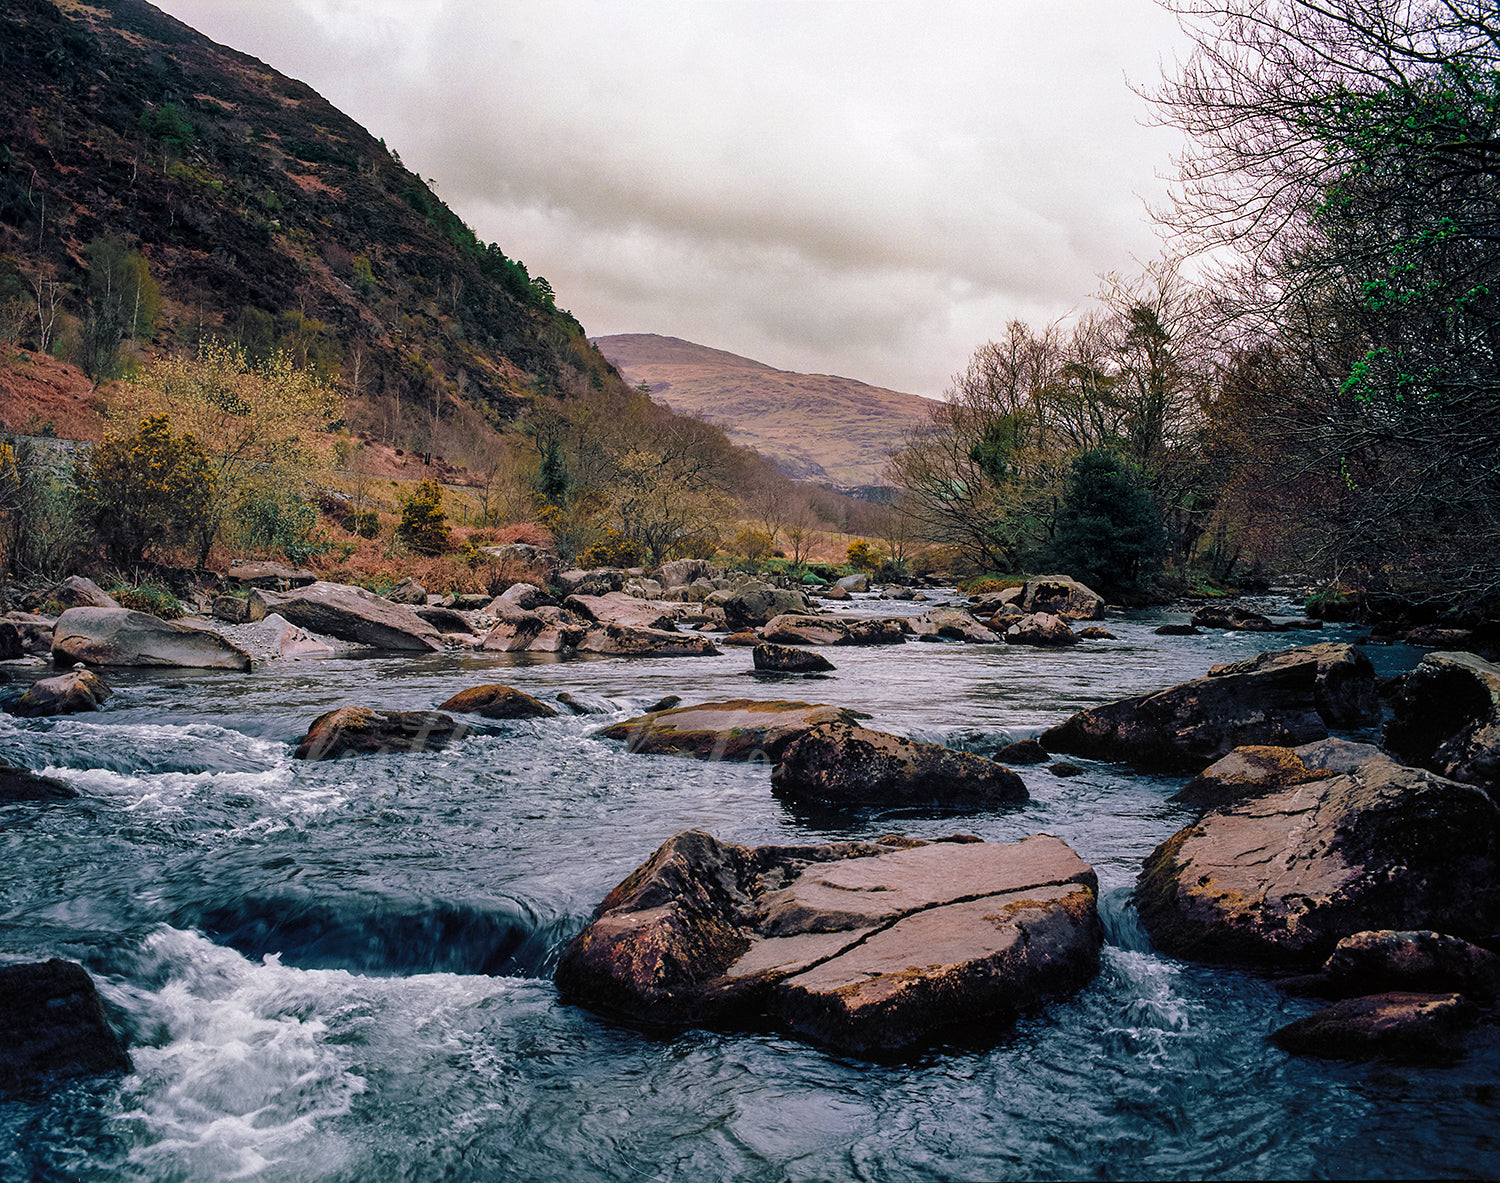 Rocky Blue River in Snowdonia Wales - Photo Print